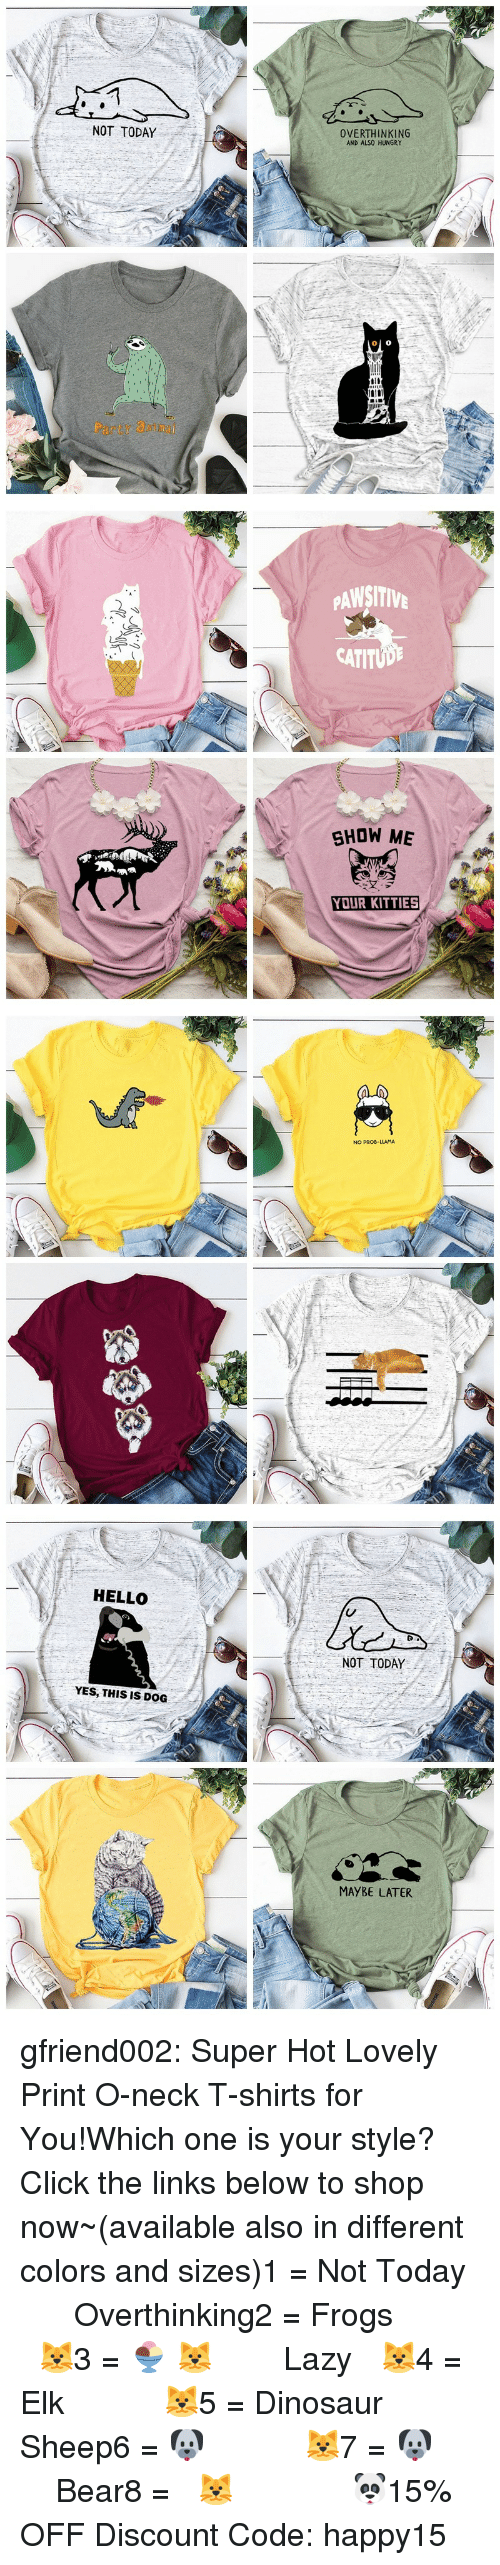 Click, Dinosaur, and Hello: NOT TODAY  OVERTHINKING  AND ALSO HUNGRY  Party atm   PAWSITIV  CATITUD  SHOW ME  YOUR KITTIES   NO PROD-LLAMA   HELLO  NOT TODAY  YES, THIS IS DOG  MAYBE LATER gfriend002:  Super Hot Lovely Print O-neck T-shirts for You!Which one is your style? Click the links below to shop now~(available also in different colors and sizes)1 = Not Today    ☆★   Overthinking2 = Frogs     ☆★   🐱3 = 🍨 🐱    ☆★    Lazy 🐱4 = Elk     ☆★    🐱5 = Dinosaur    ☆★   Sheep6 = 🐶     ☆★    🐱7 = 🐶     ☆★    Bear8 = 🐱       ☆★    🐼15% OFF Discount Code: happy15